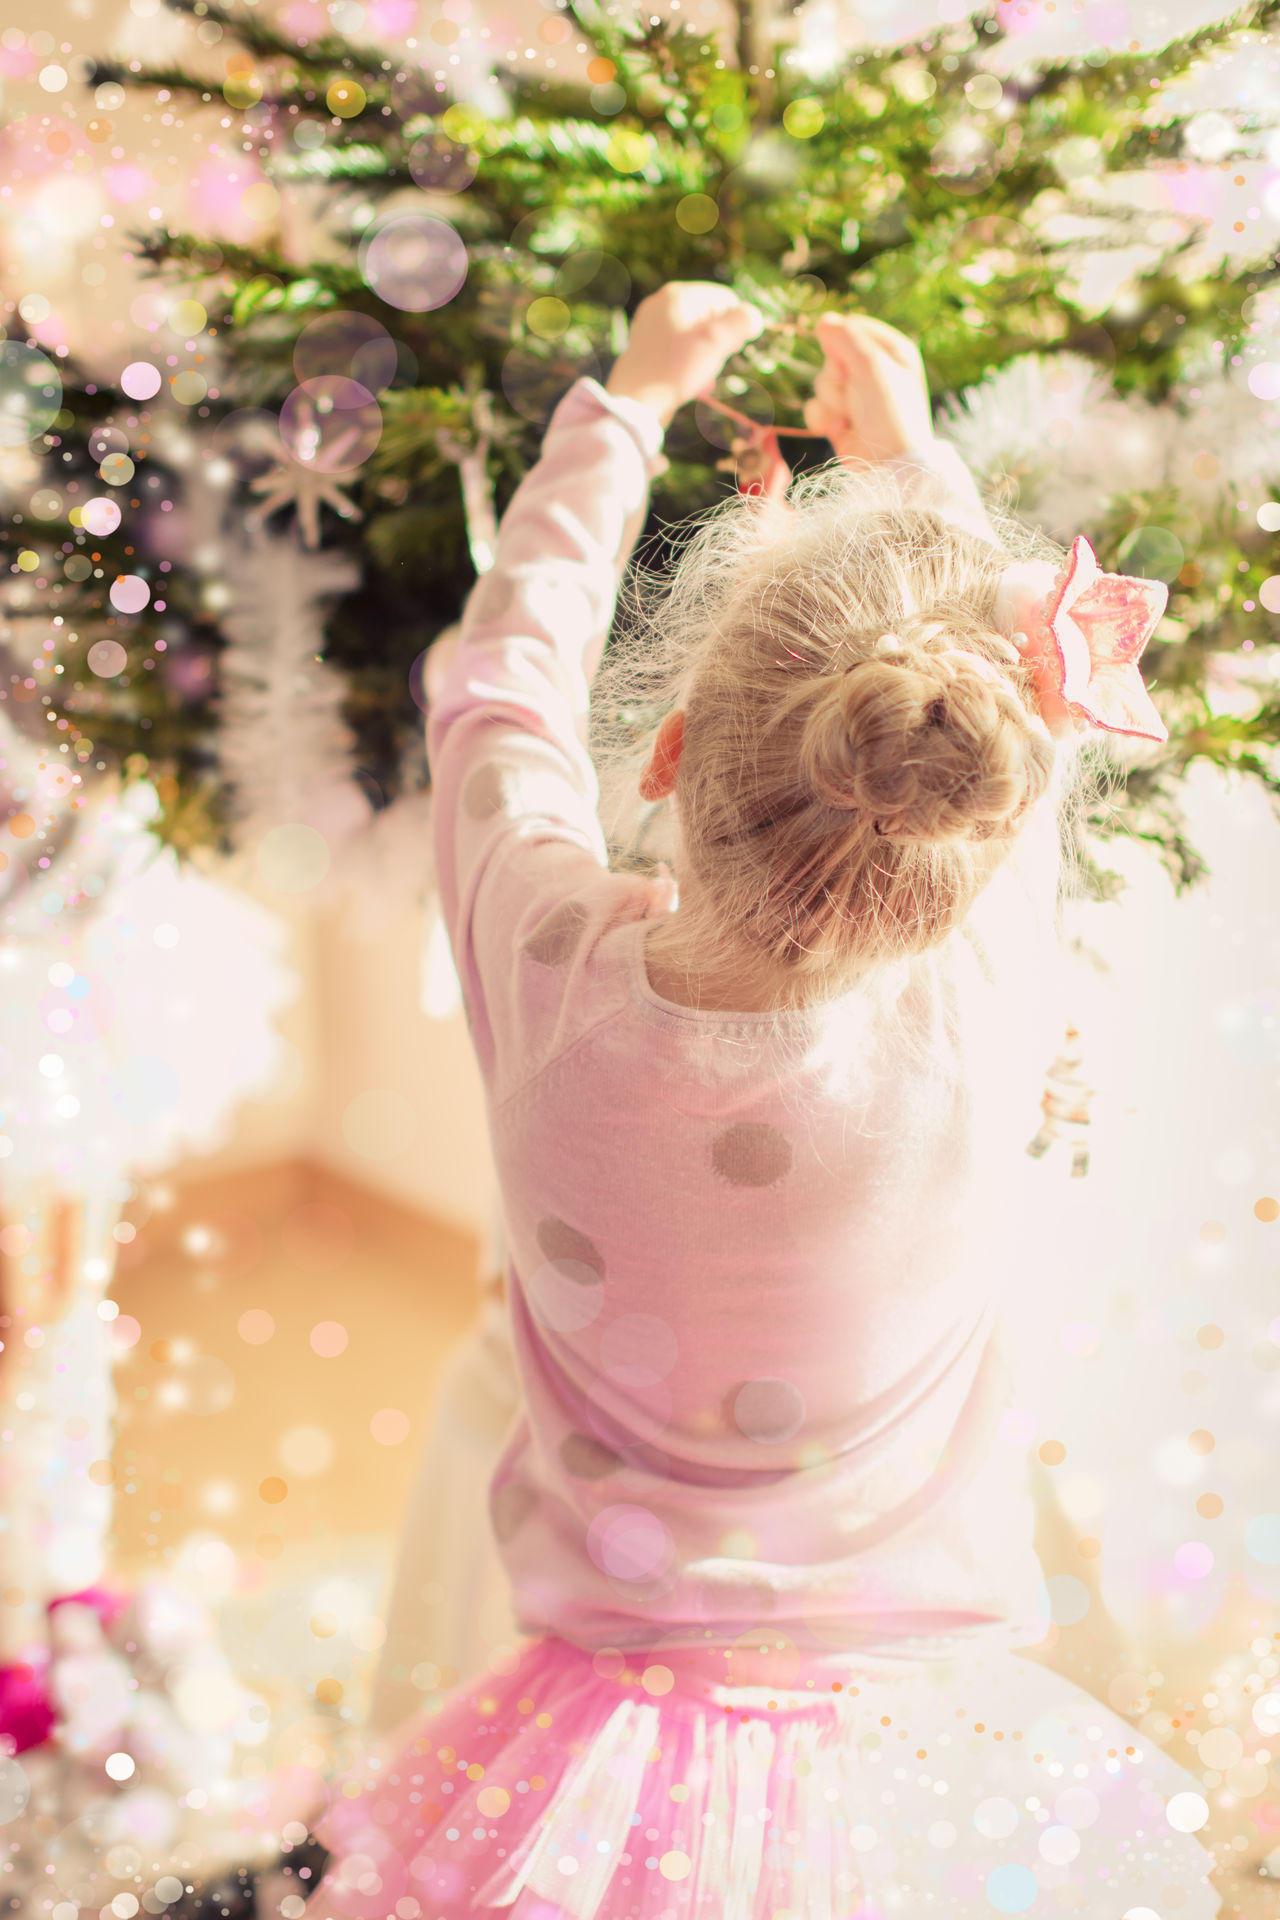 Ballerina Ballet Celebration Christmas Christmas Tree Cute Day Decorating Decoration Family Festive Girl Green Color Home Indoors  Little Girl One Girl Only One Person Pink Color Princess Rear View Sparkling Sunlight Tree Tutu